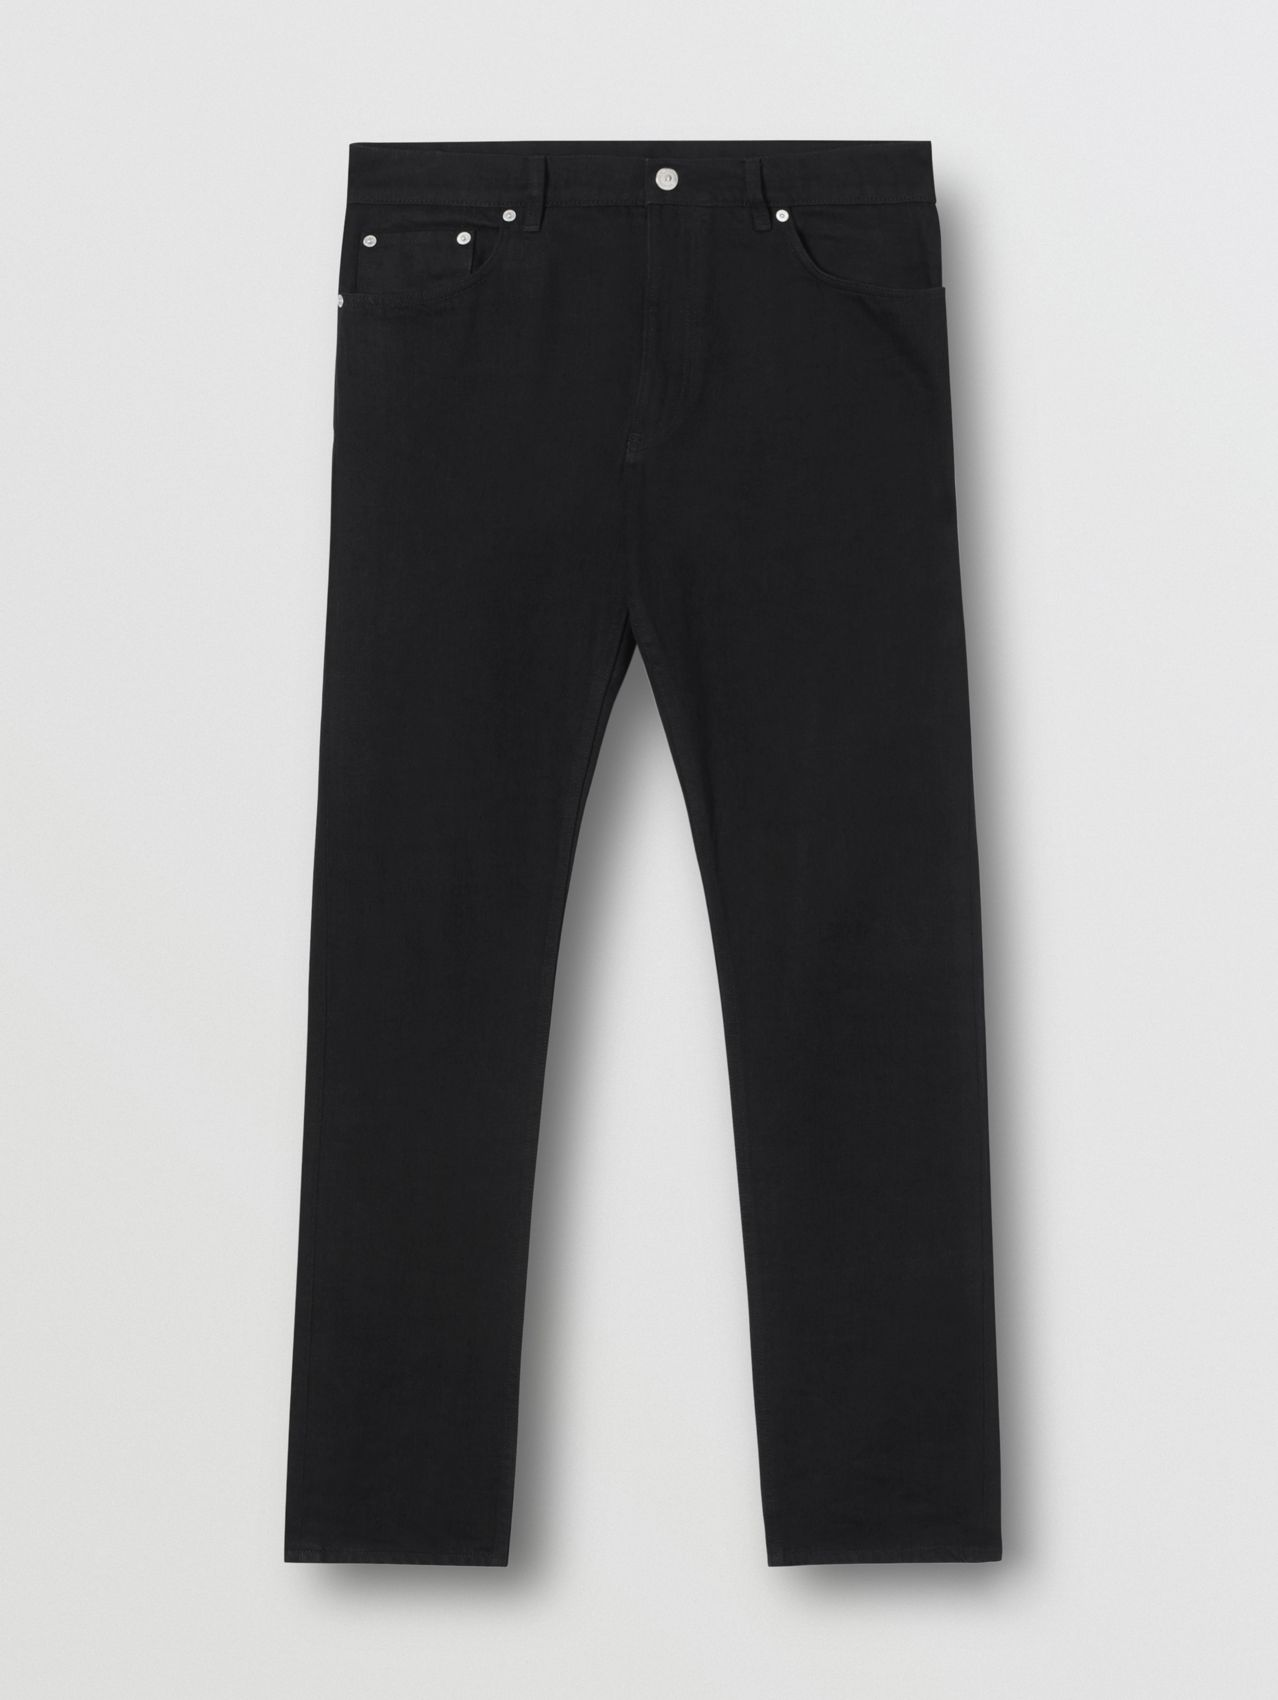 Straight Fit Japanese Denim Jeans in Black